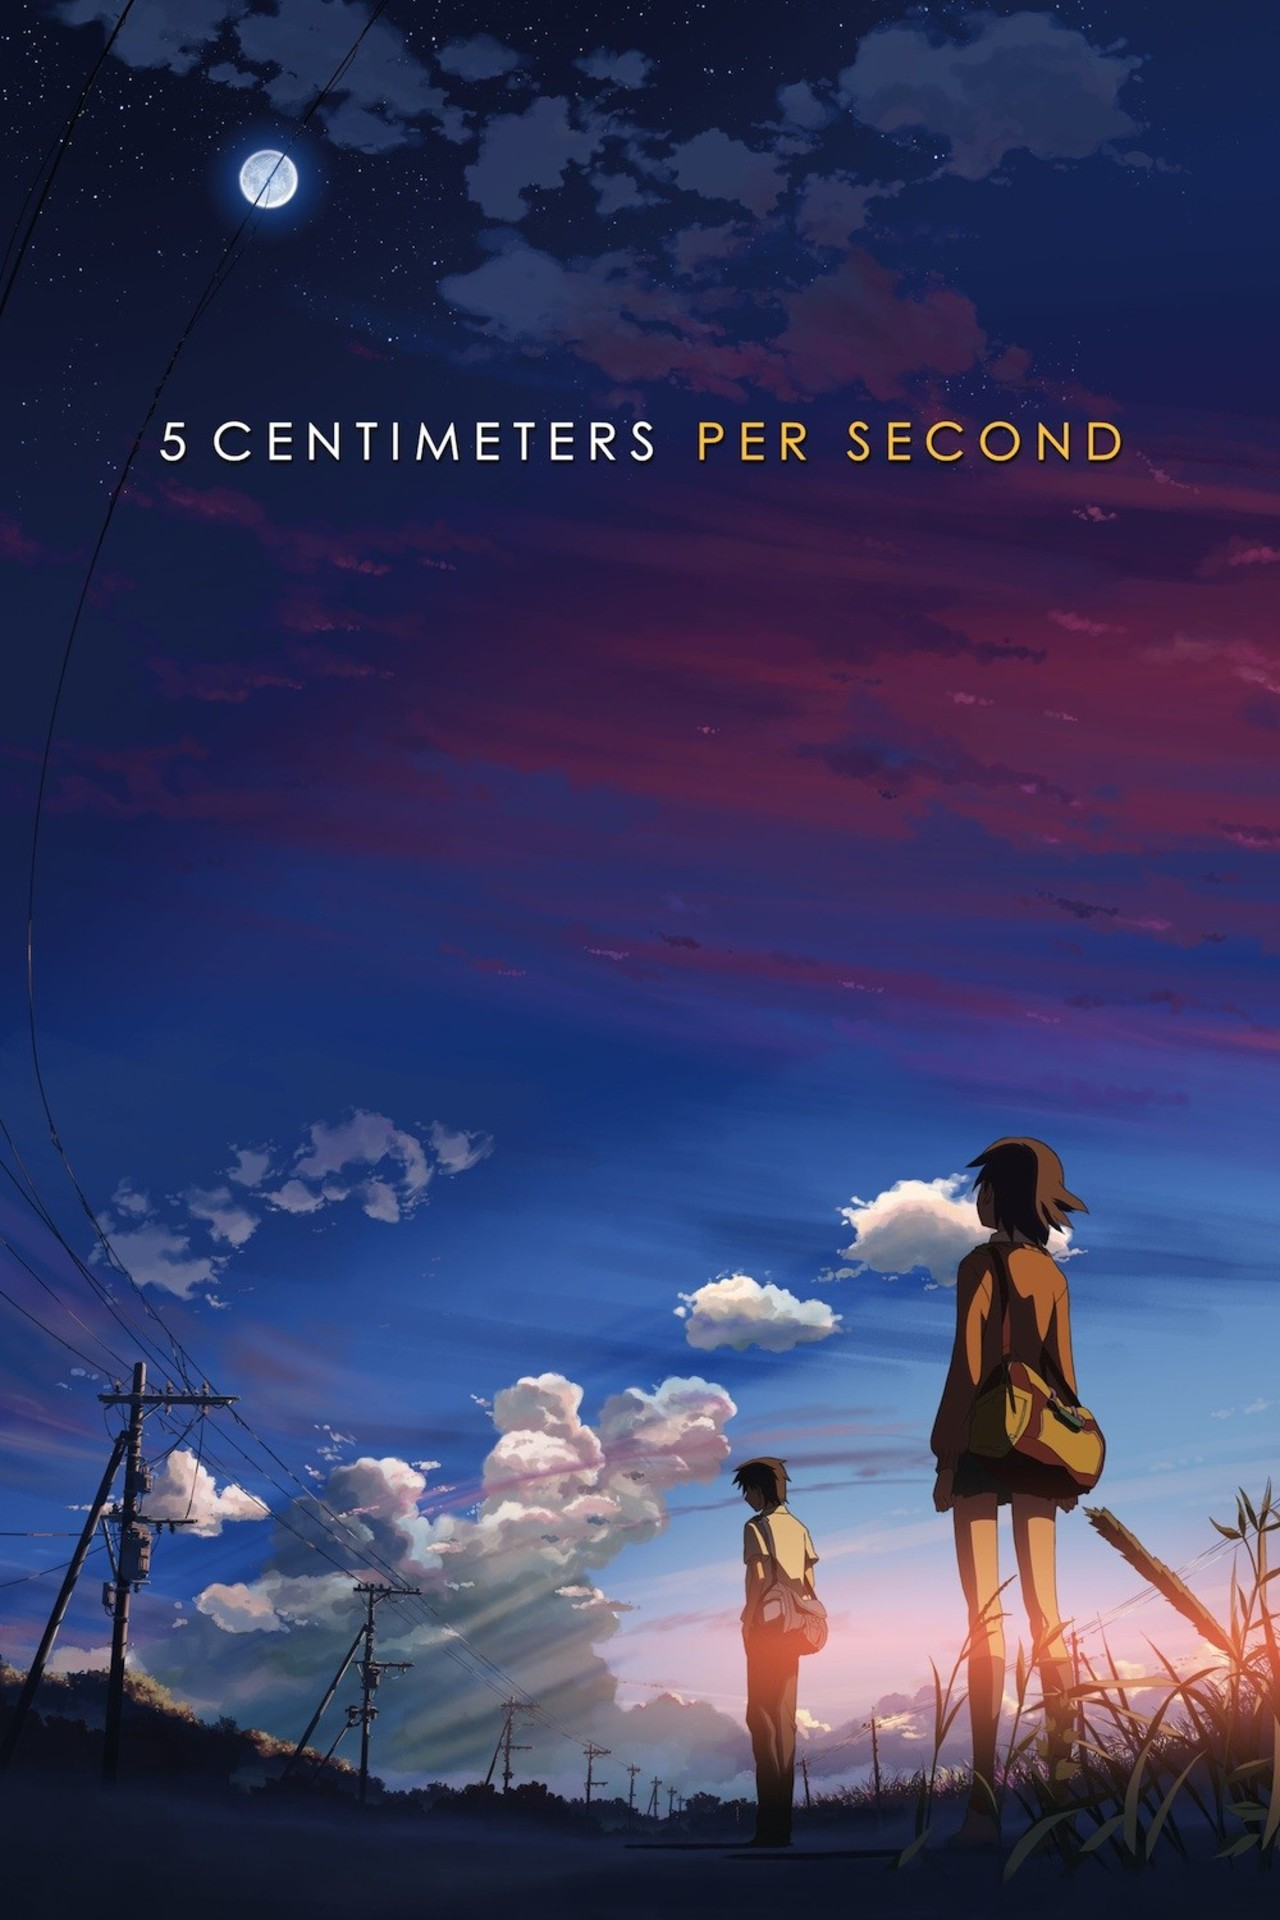 5 Centimeters Per Second kapak